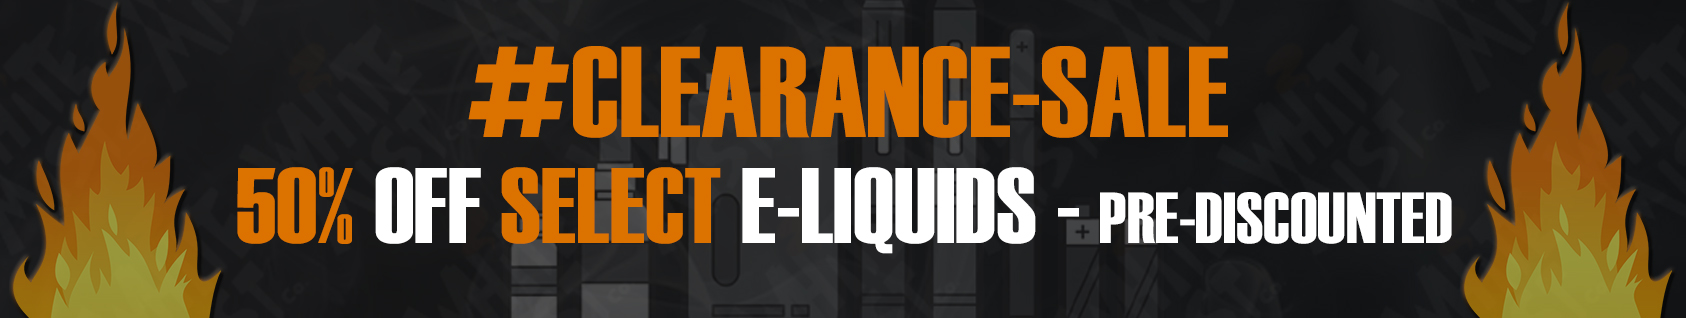 Clearance Sale Eliquids